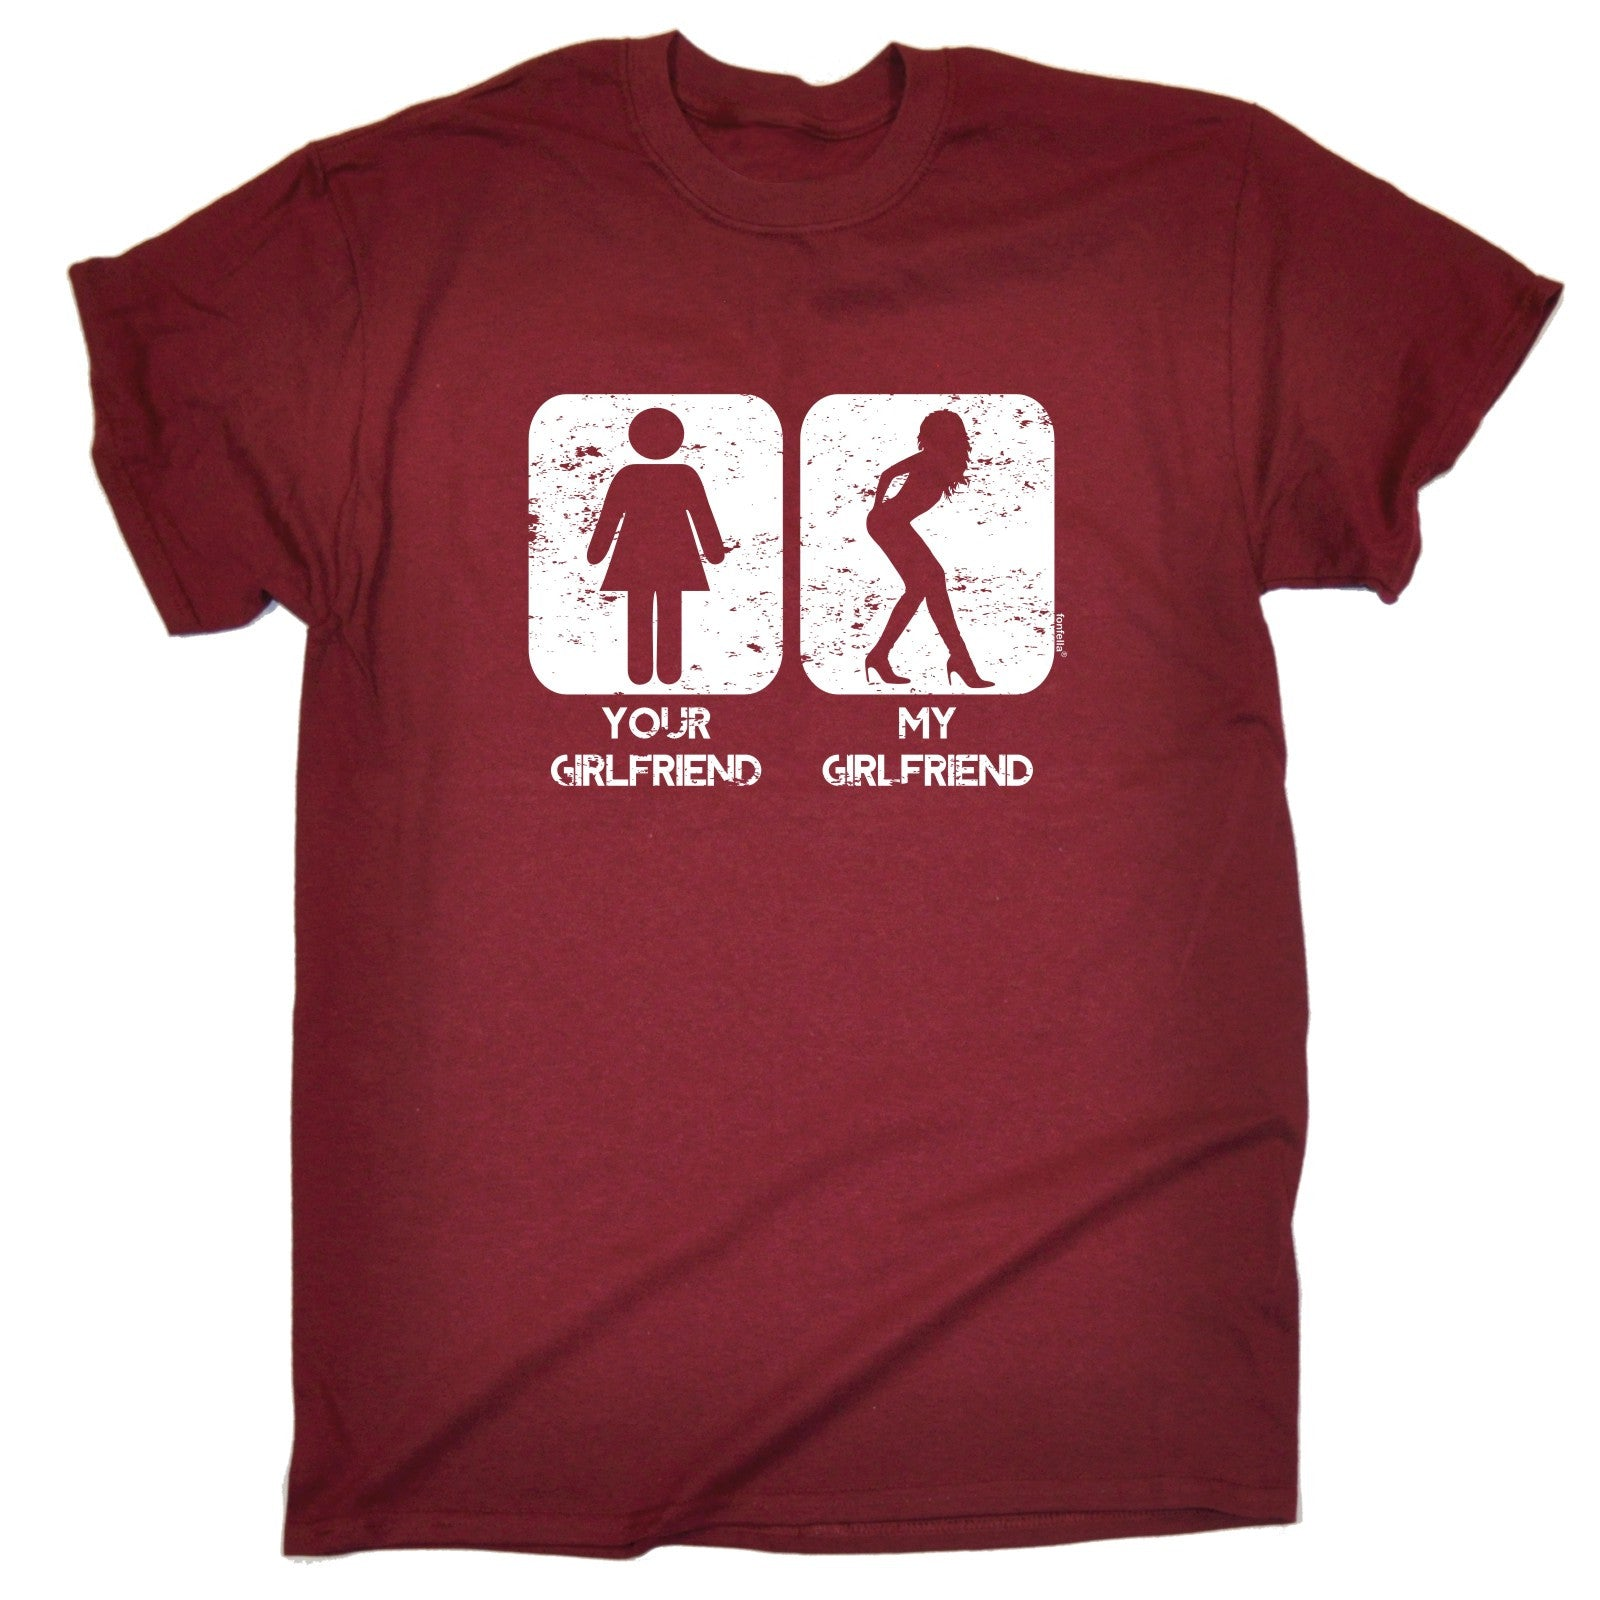 your girlfriend my girlfriend t shirt tee partner funny